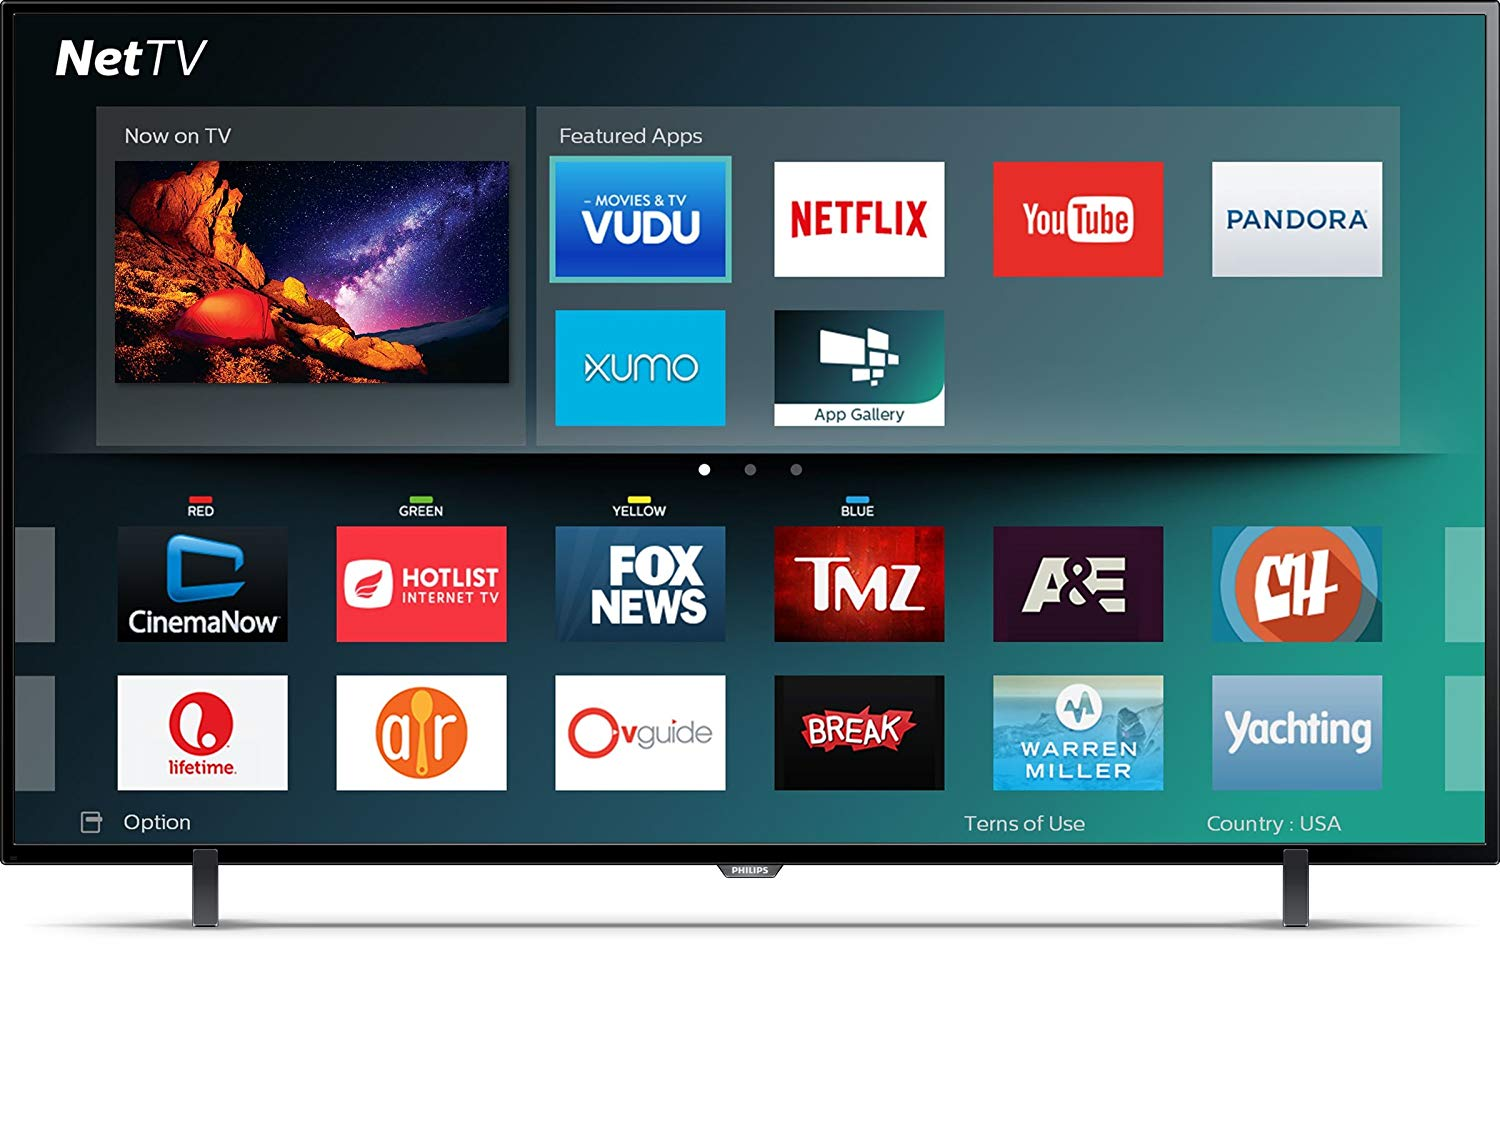 An image of Philips 65PFL5602/F7 65-Inch HDR 4K LED 60Hz TV with Motion Rate 120